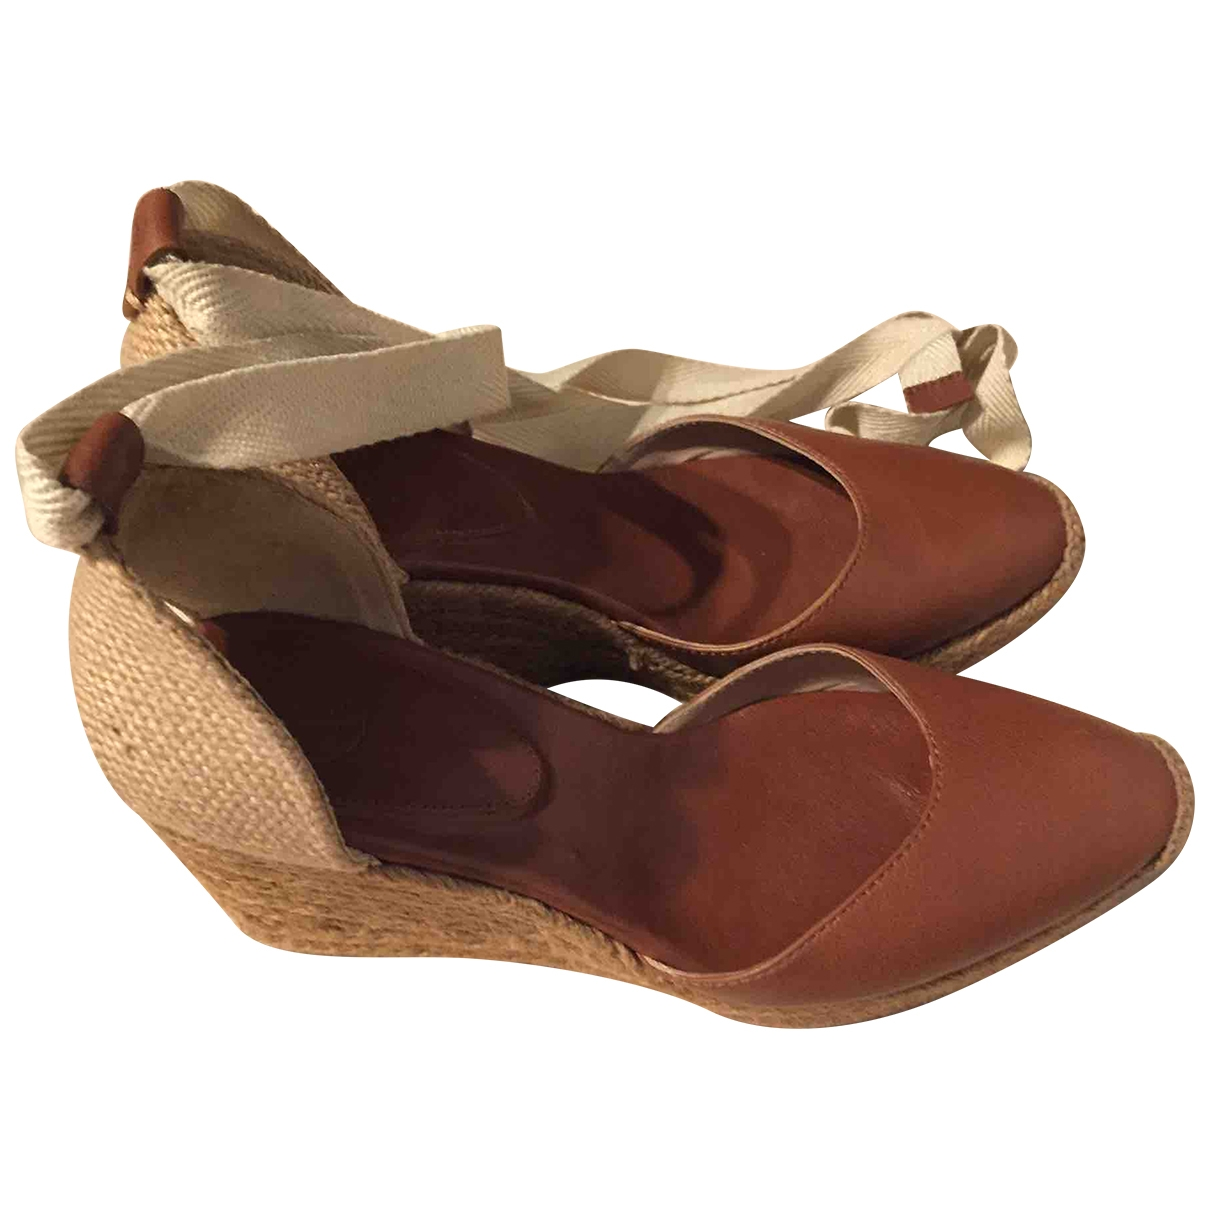 Massimo Dutti \N Brown Leather Espadrilles for Women 38 EU